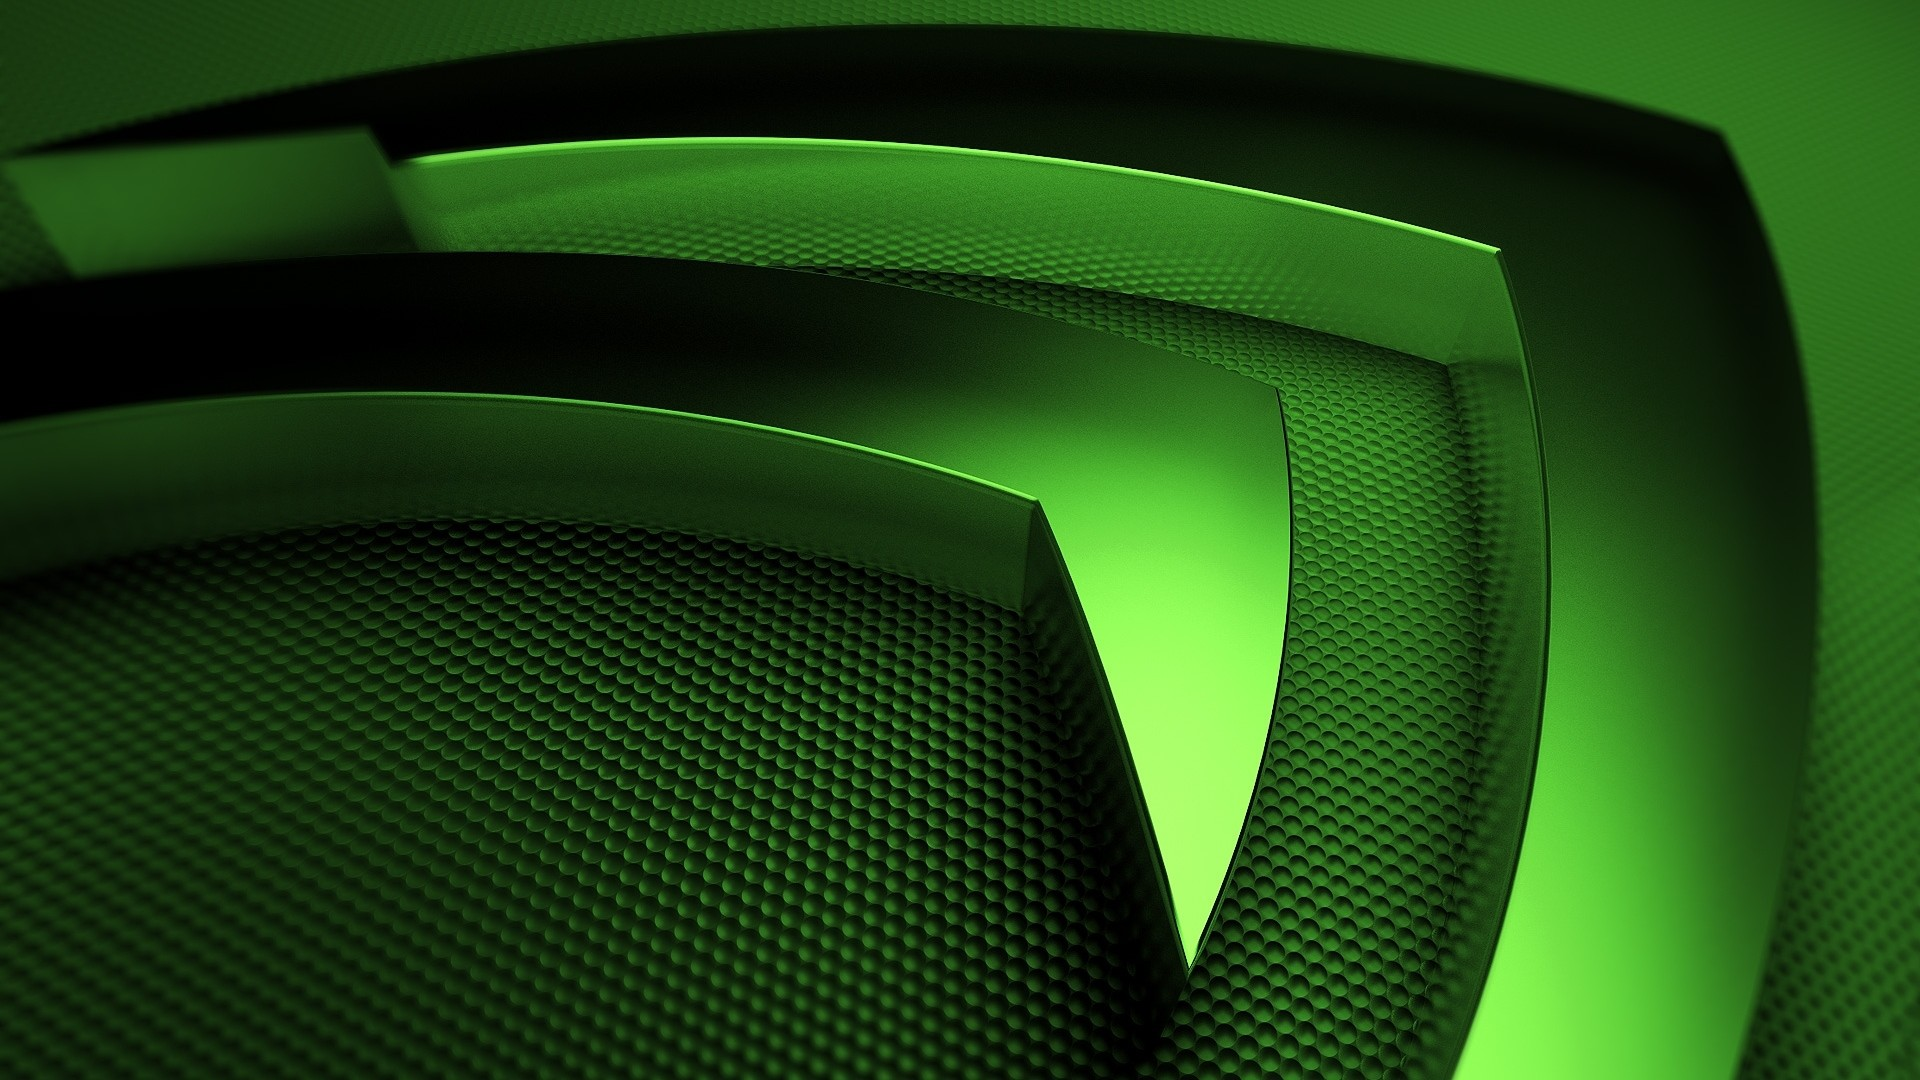 Best Looking Cars Wallpapers Nvidia Wallpaper 1920x1080 Hd 82 Images